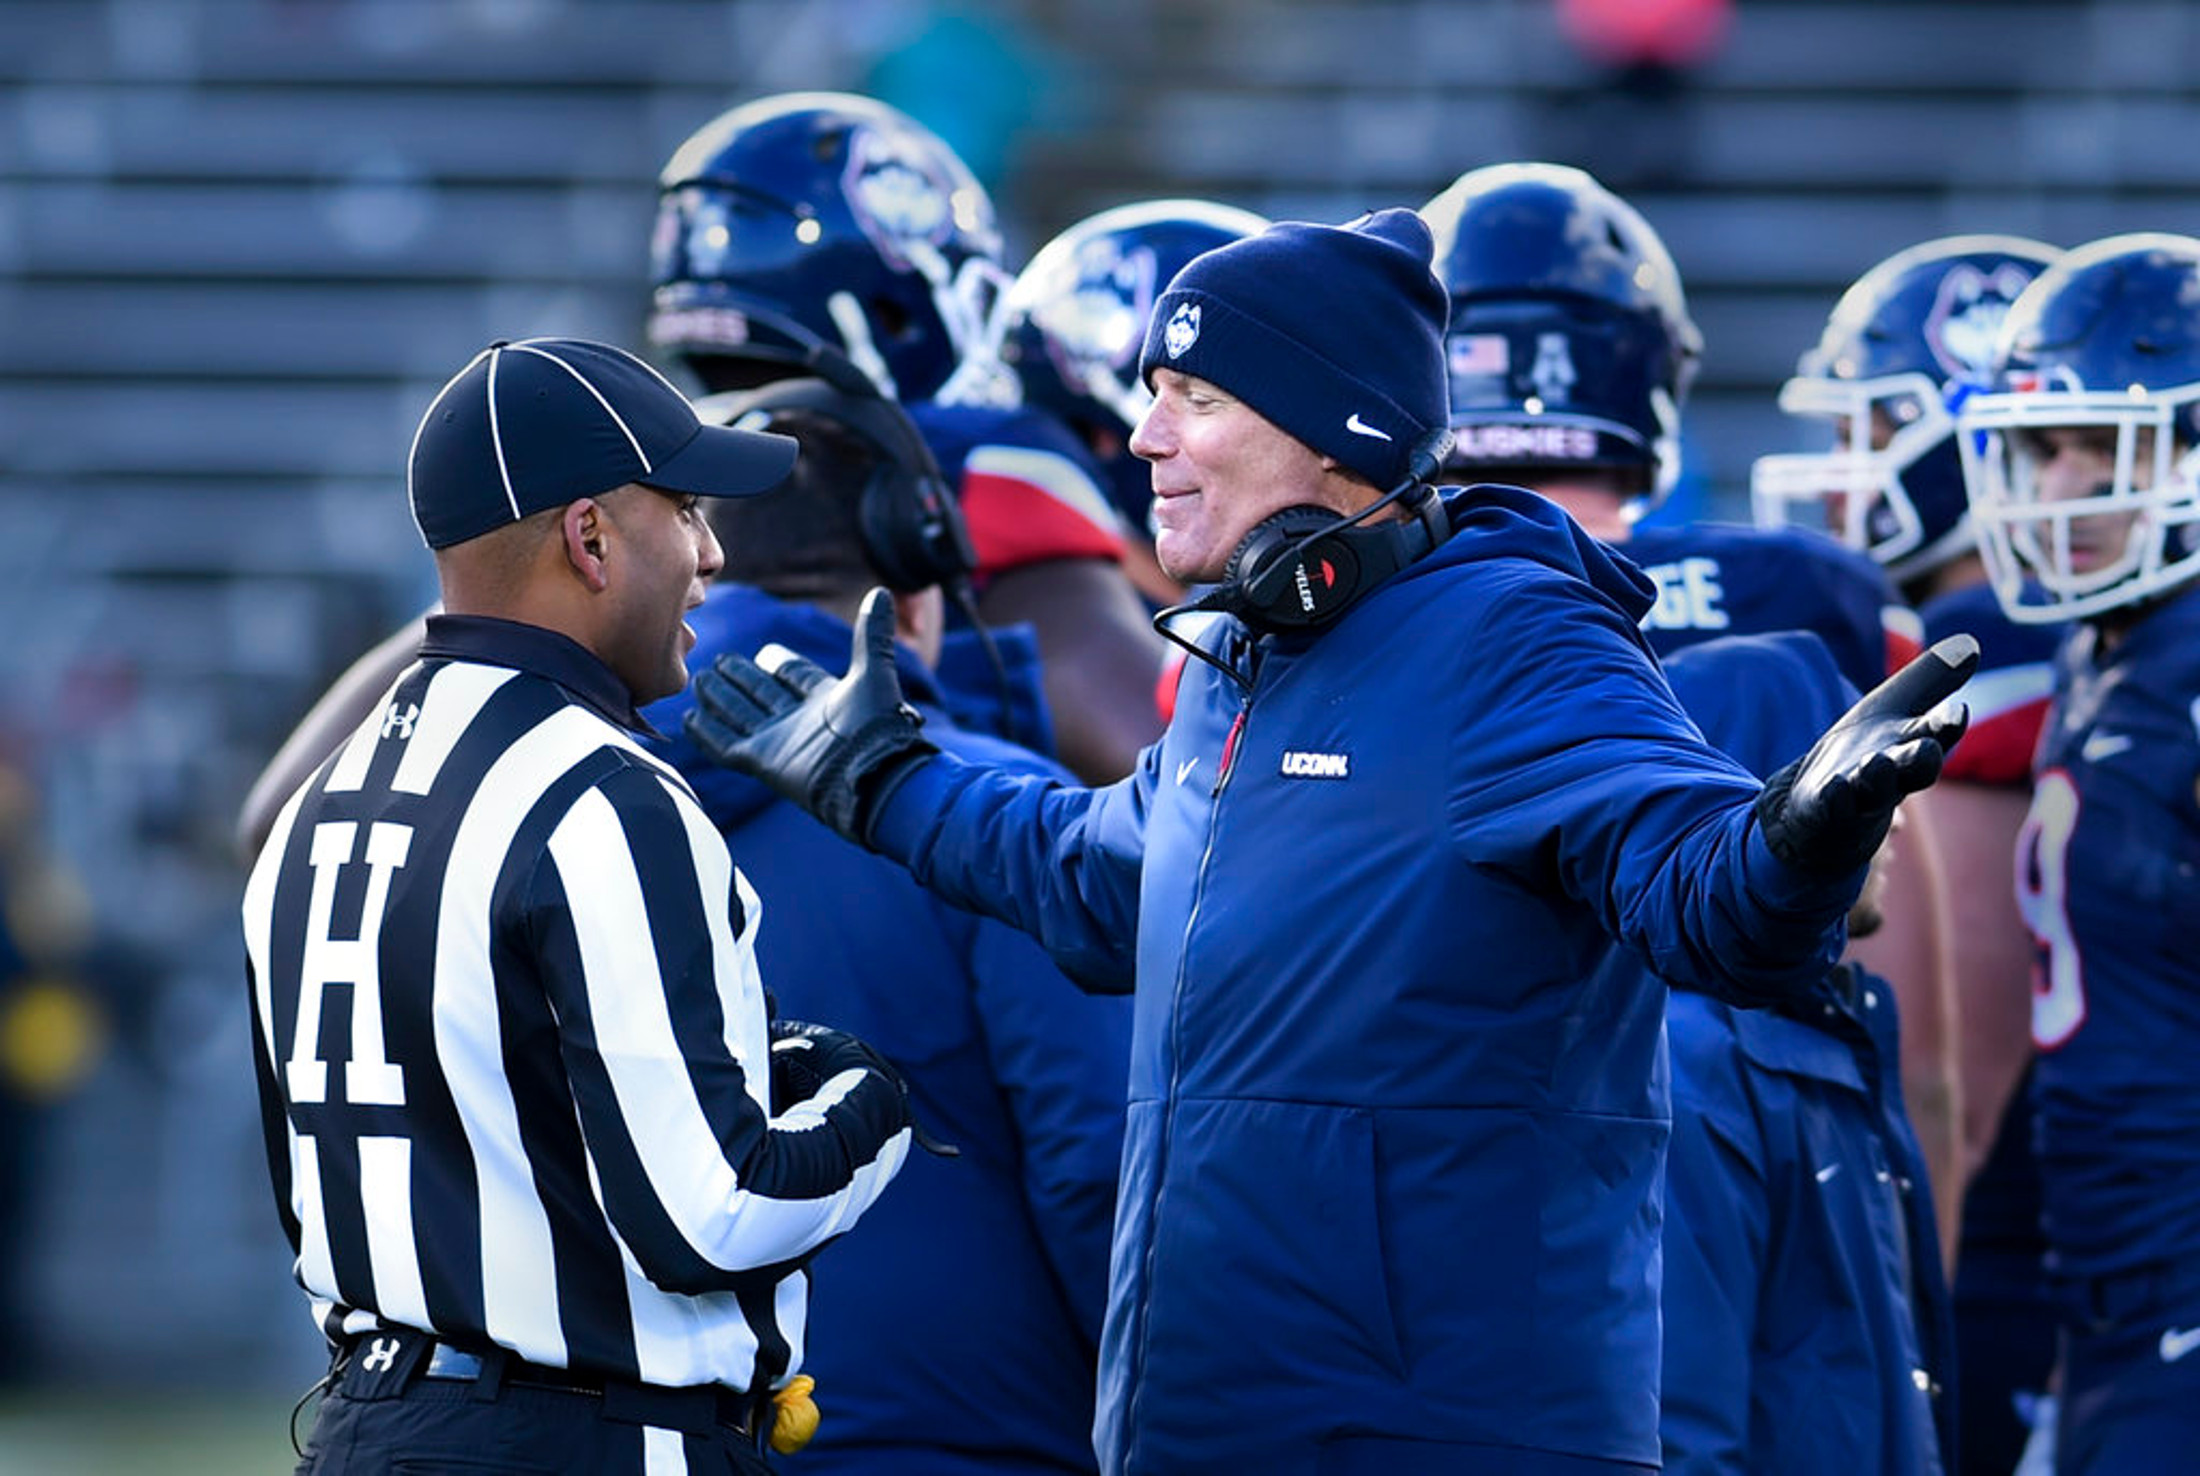 Connecticut head coach Randy Edsall pleads with an official during a time out in the second half of an NCAA college football game against SMU, Saturday, Nov. 10, 2018, in East Hartford, Conn.(AP Photo/Stephen Dunn)